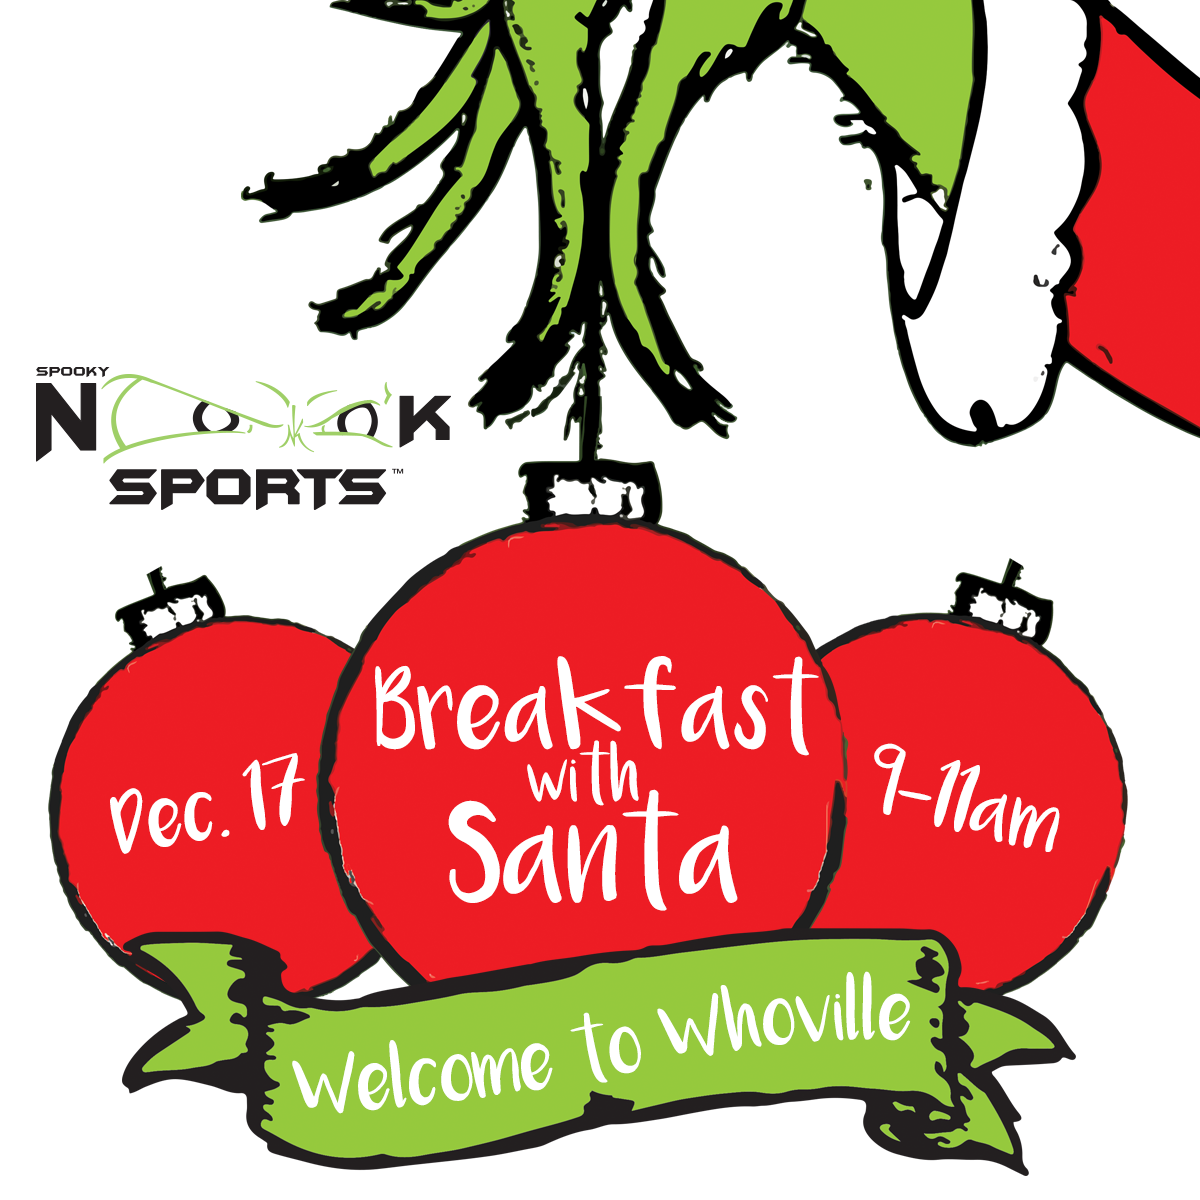 Event Breakfast With Santa Events Lancasterpa Com